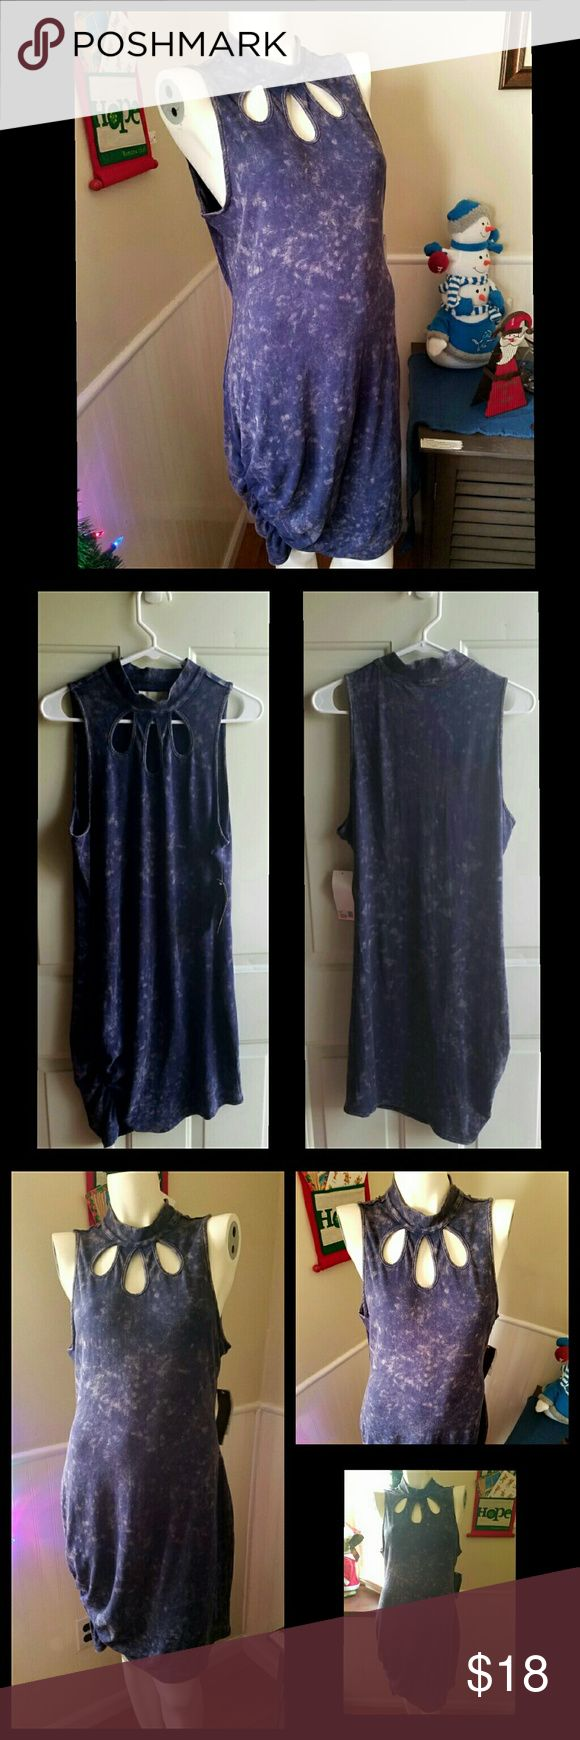 """Nicki Minaj BodyCon Dress NWT. Blue almost like stone wash look. 3 tear detailing at neck. Stretchy material. Has elastic ribbing detailing on the bottom of one side of dress. Size chart in last photo.  Inseam Length 29"""" Shoulder to bottom length 39"""" Nicki Minaj Dresses"""